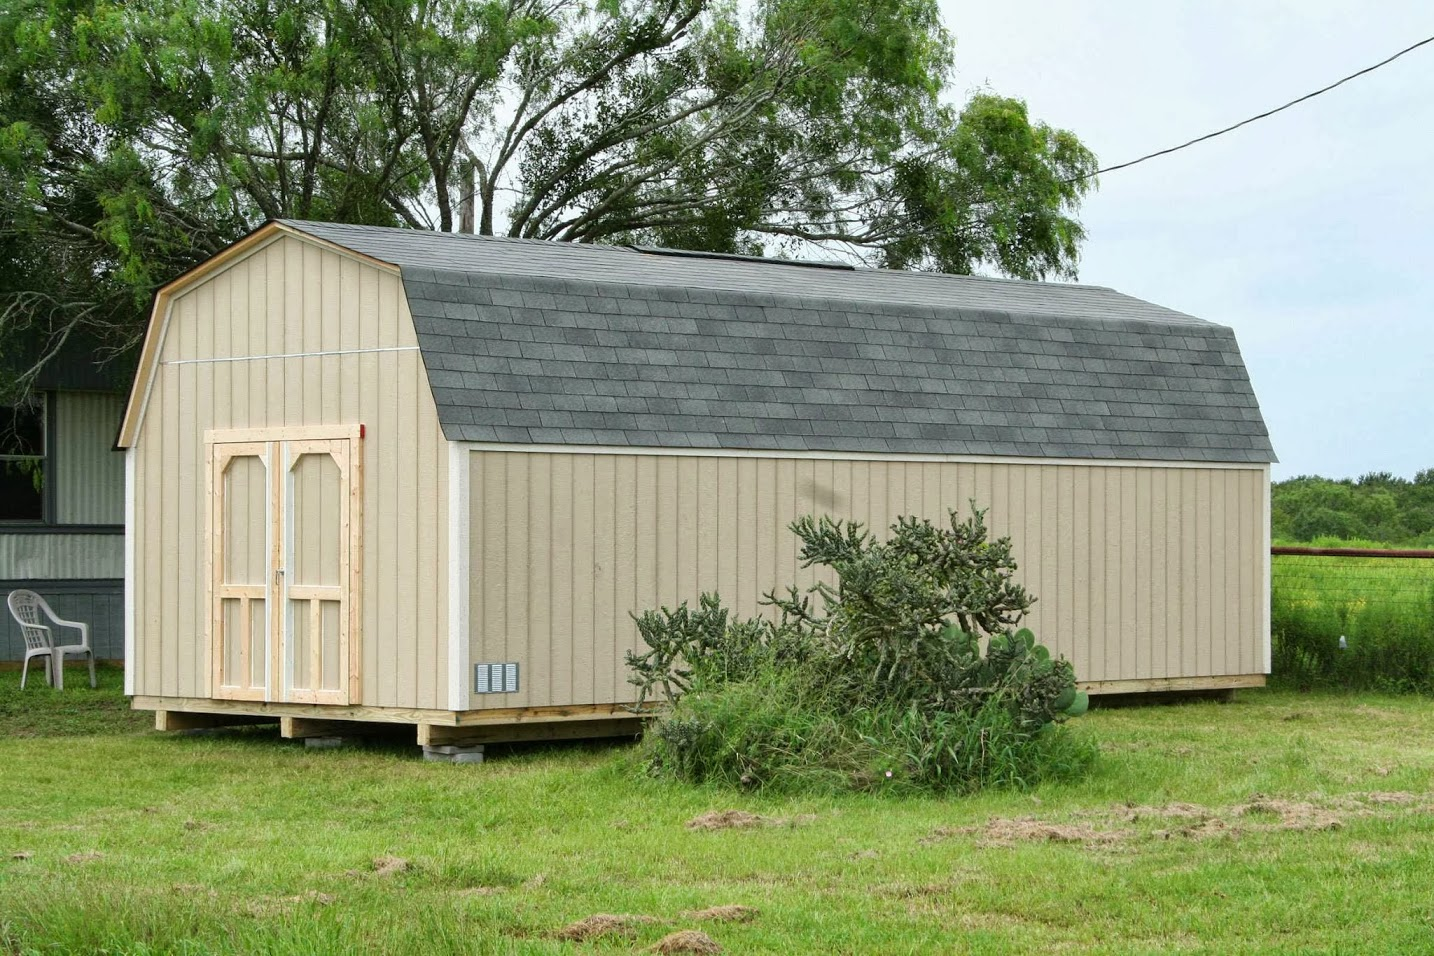 Backyard barns custom wood storage sheds san antonio for Sheds storage buildings